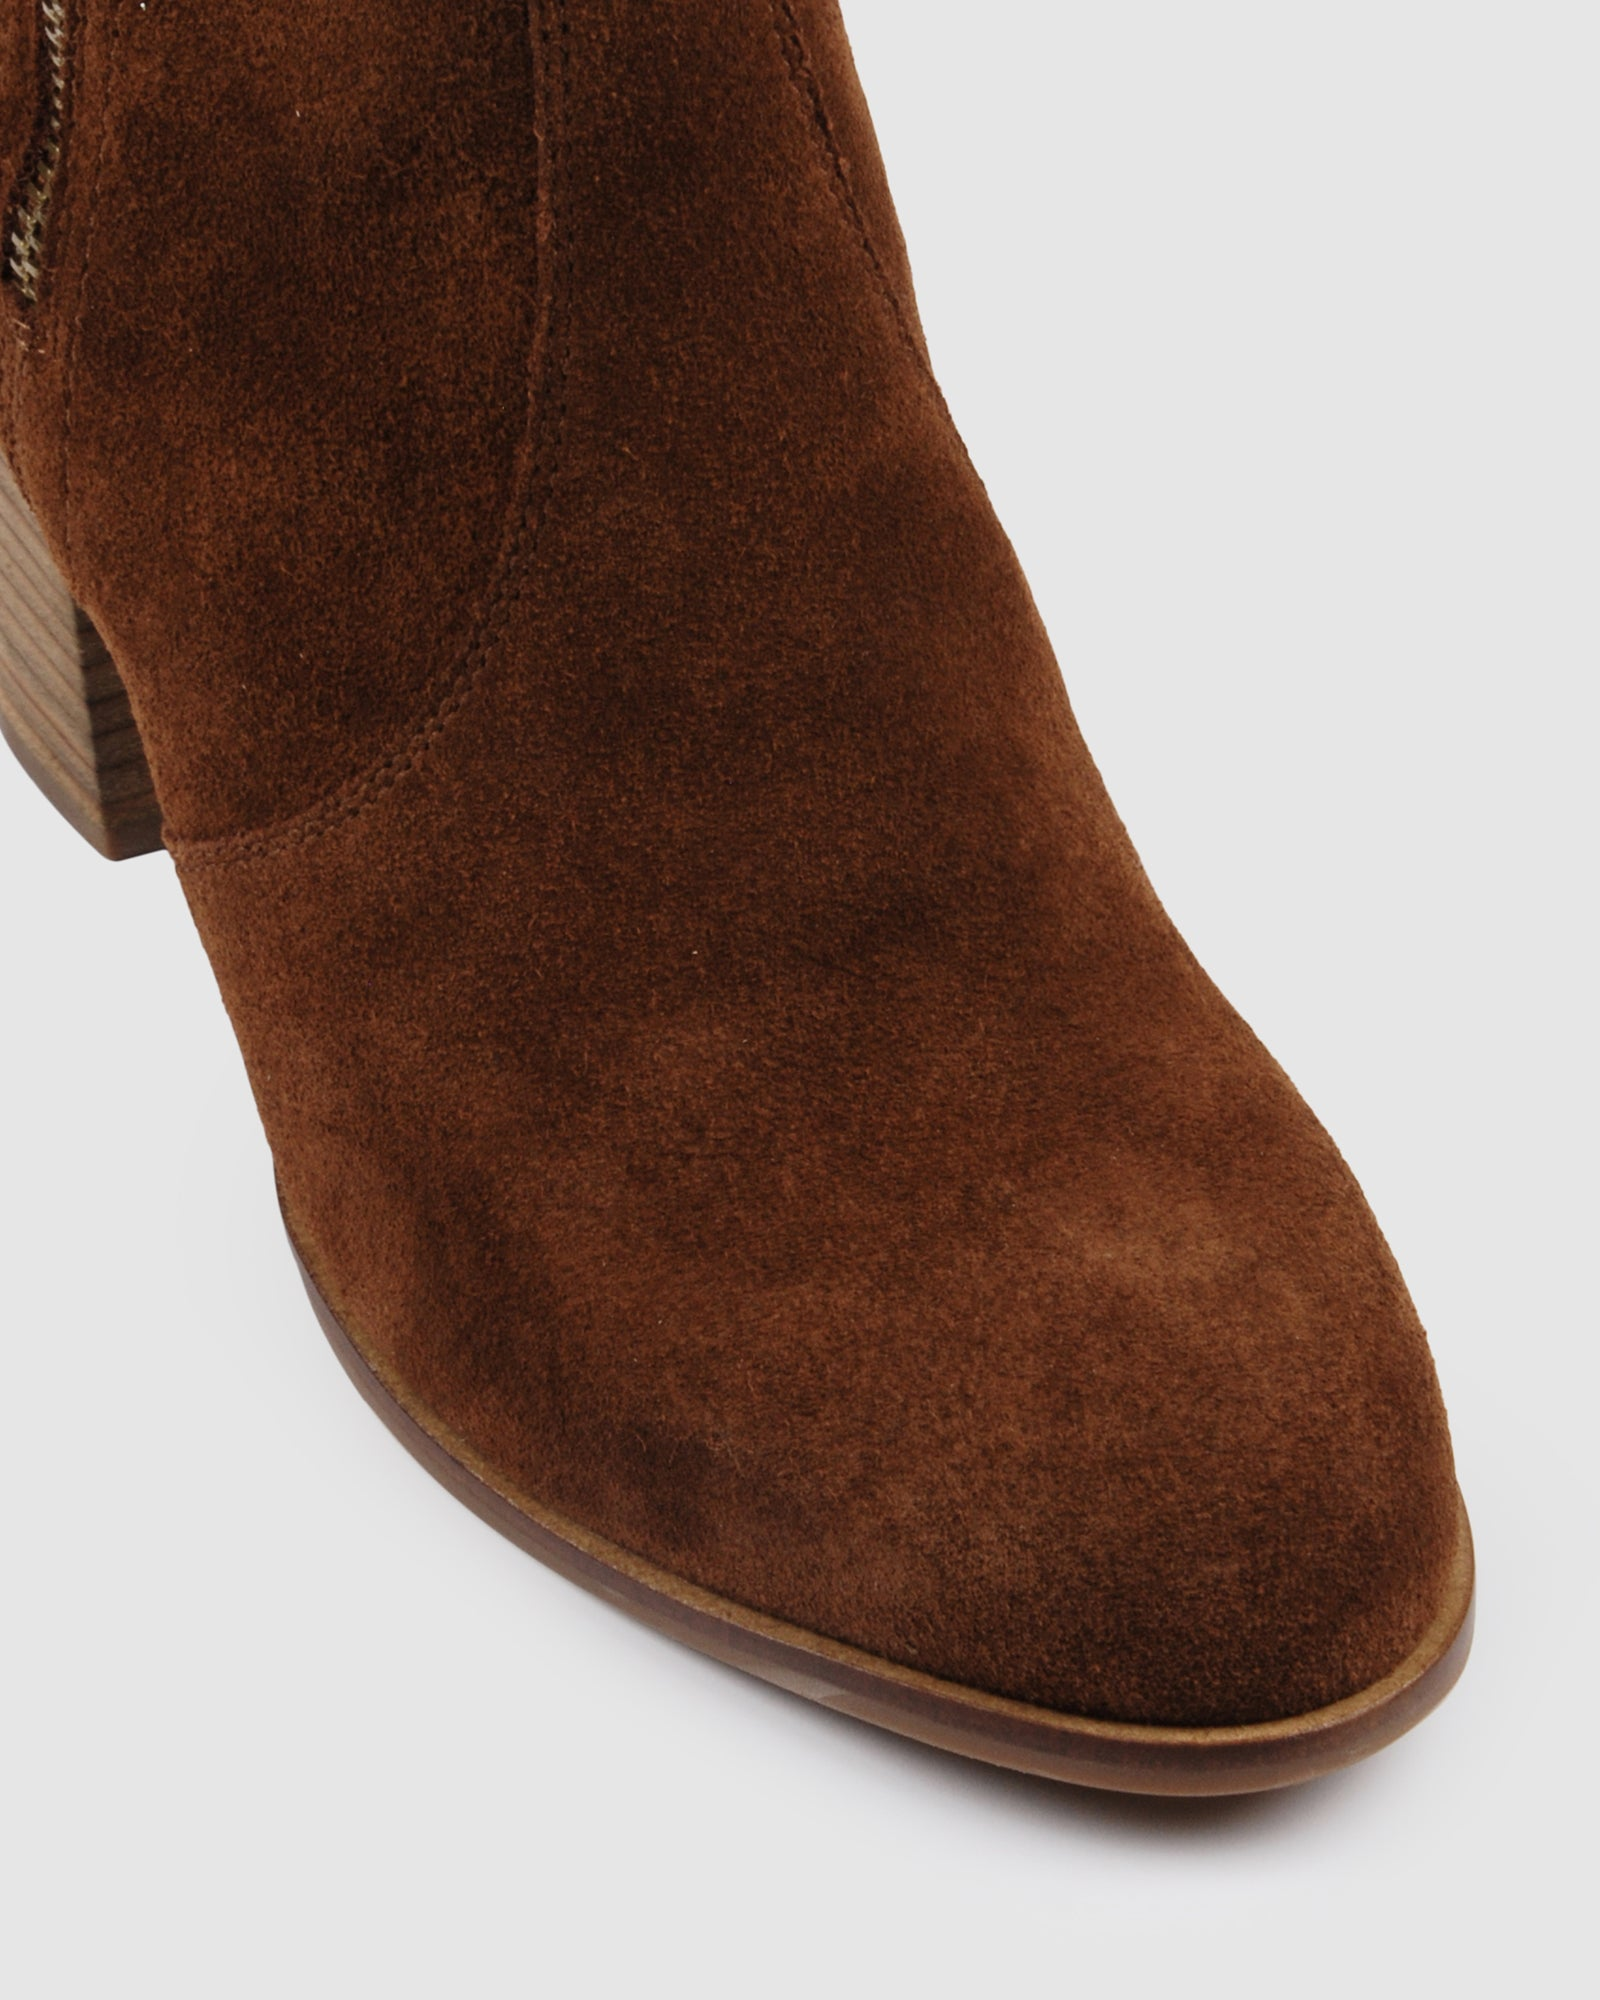 FIRENZE MID ANKLE BOOTS TAN SUEDE